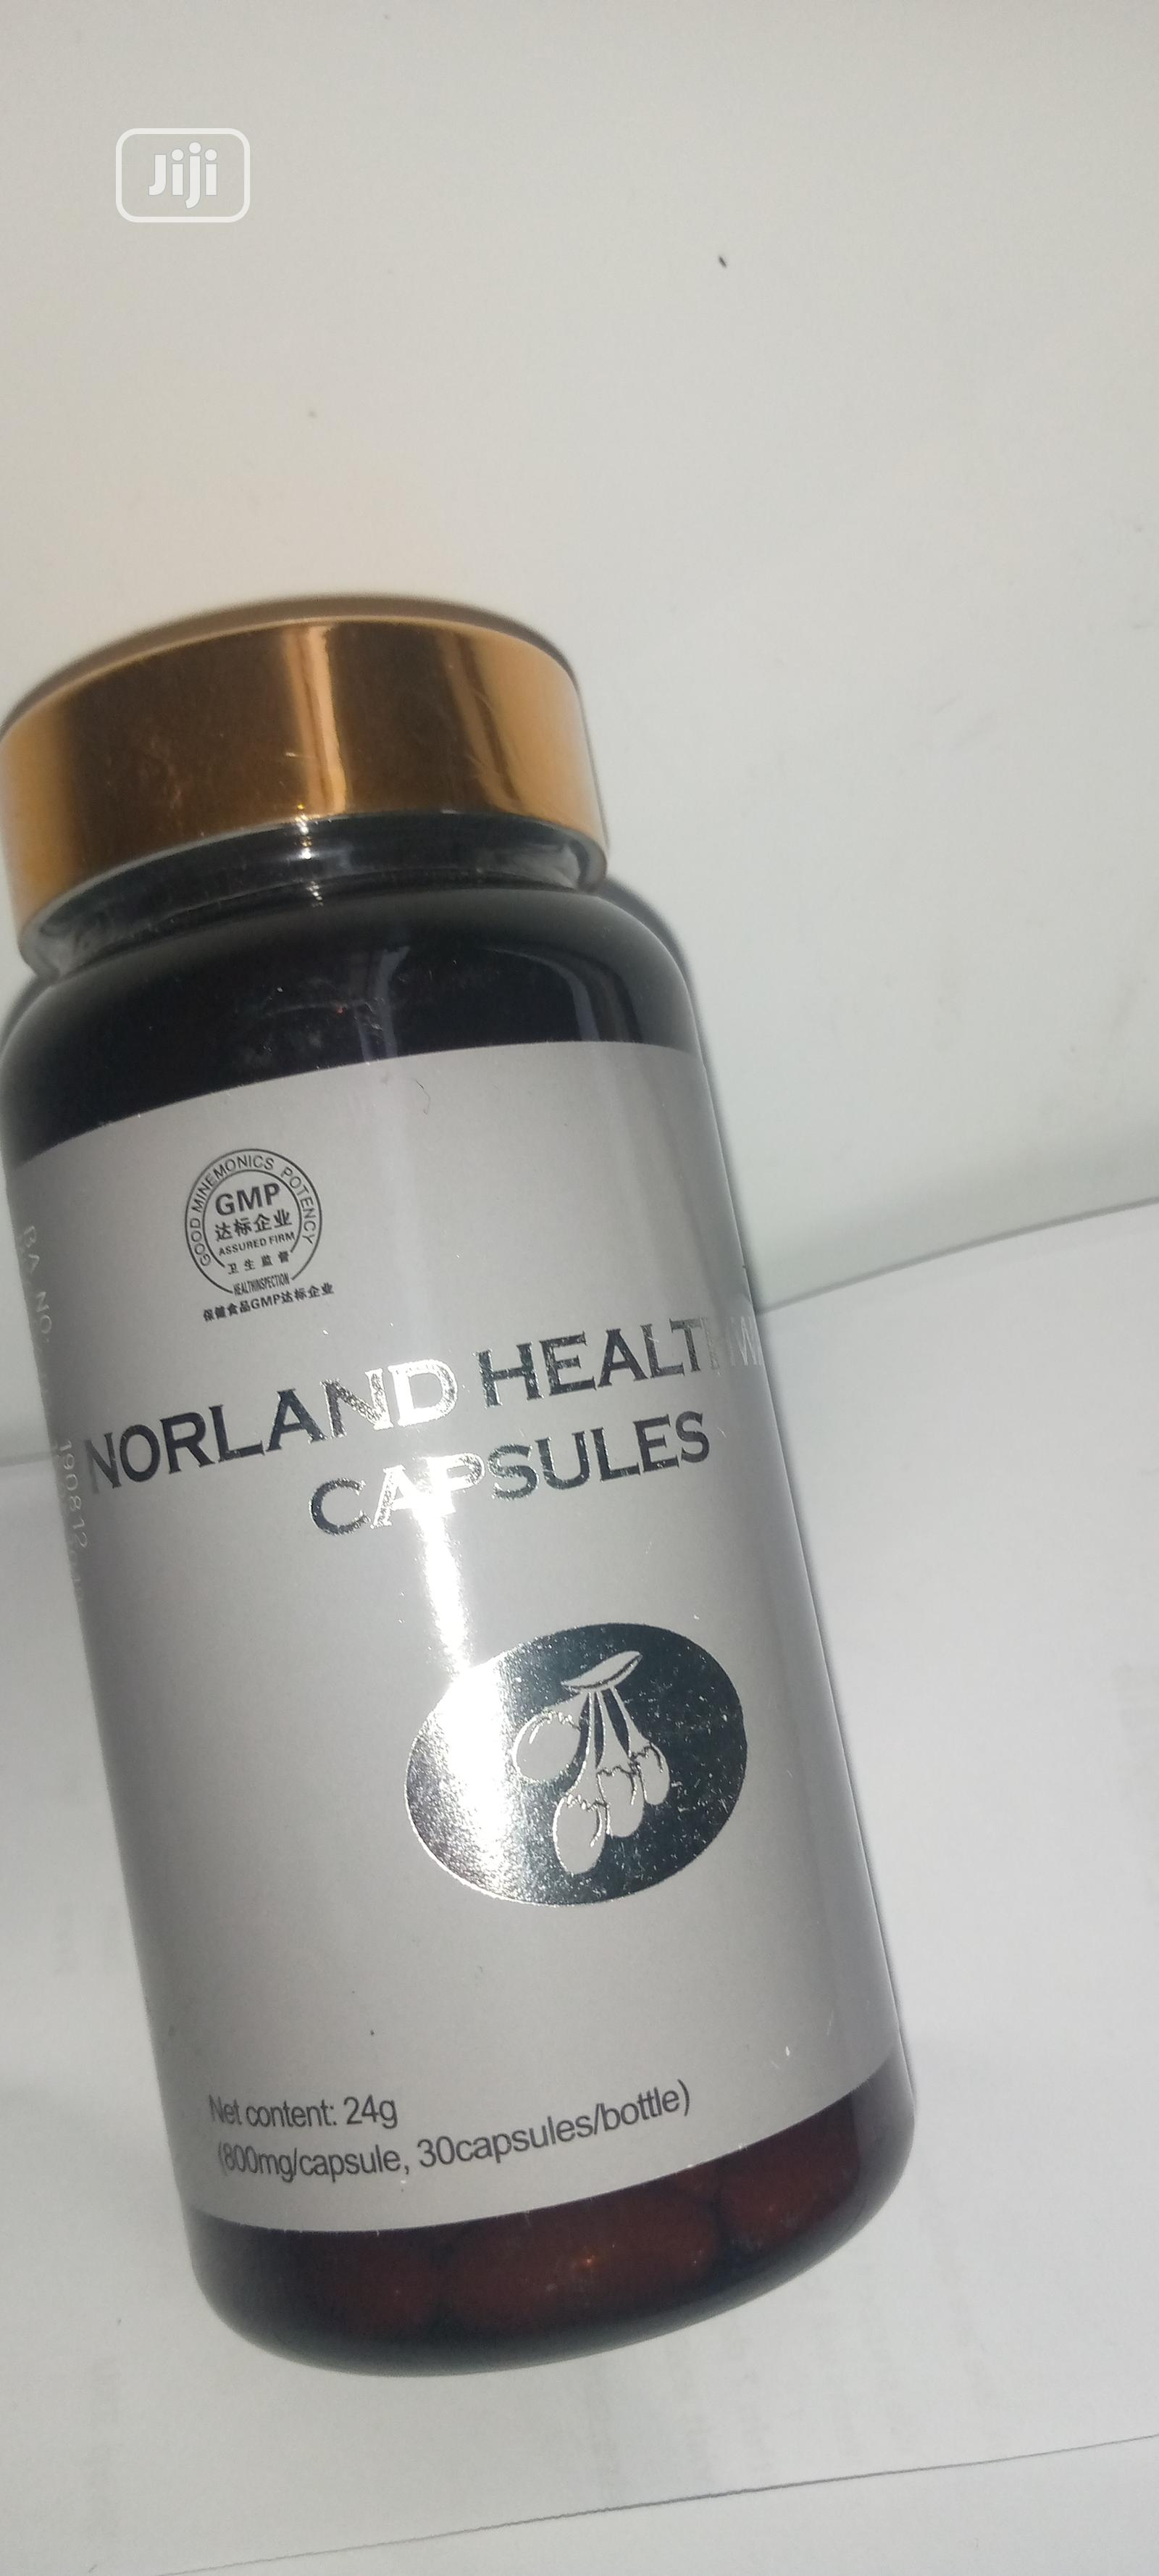 Cure Diabetes With Norland Healthway Capsule